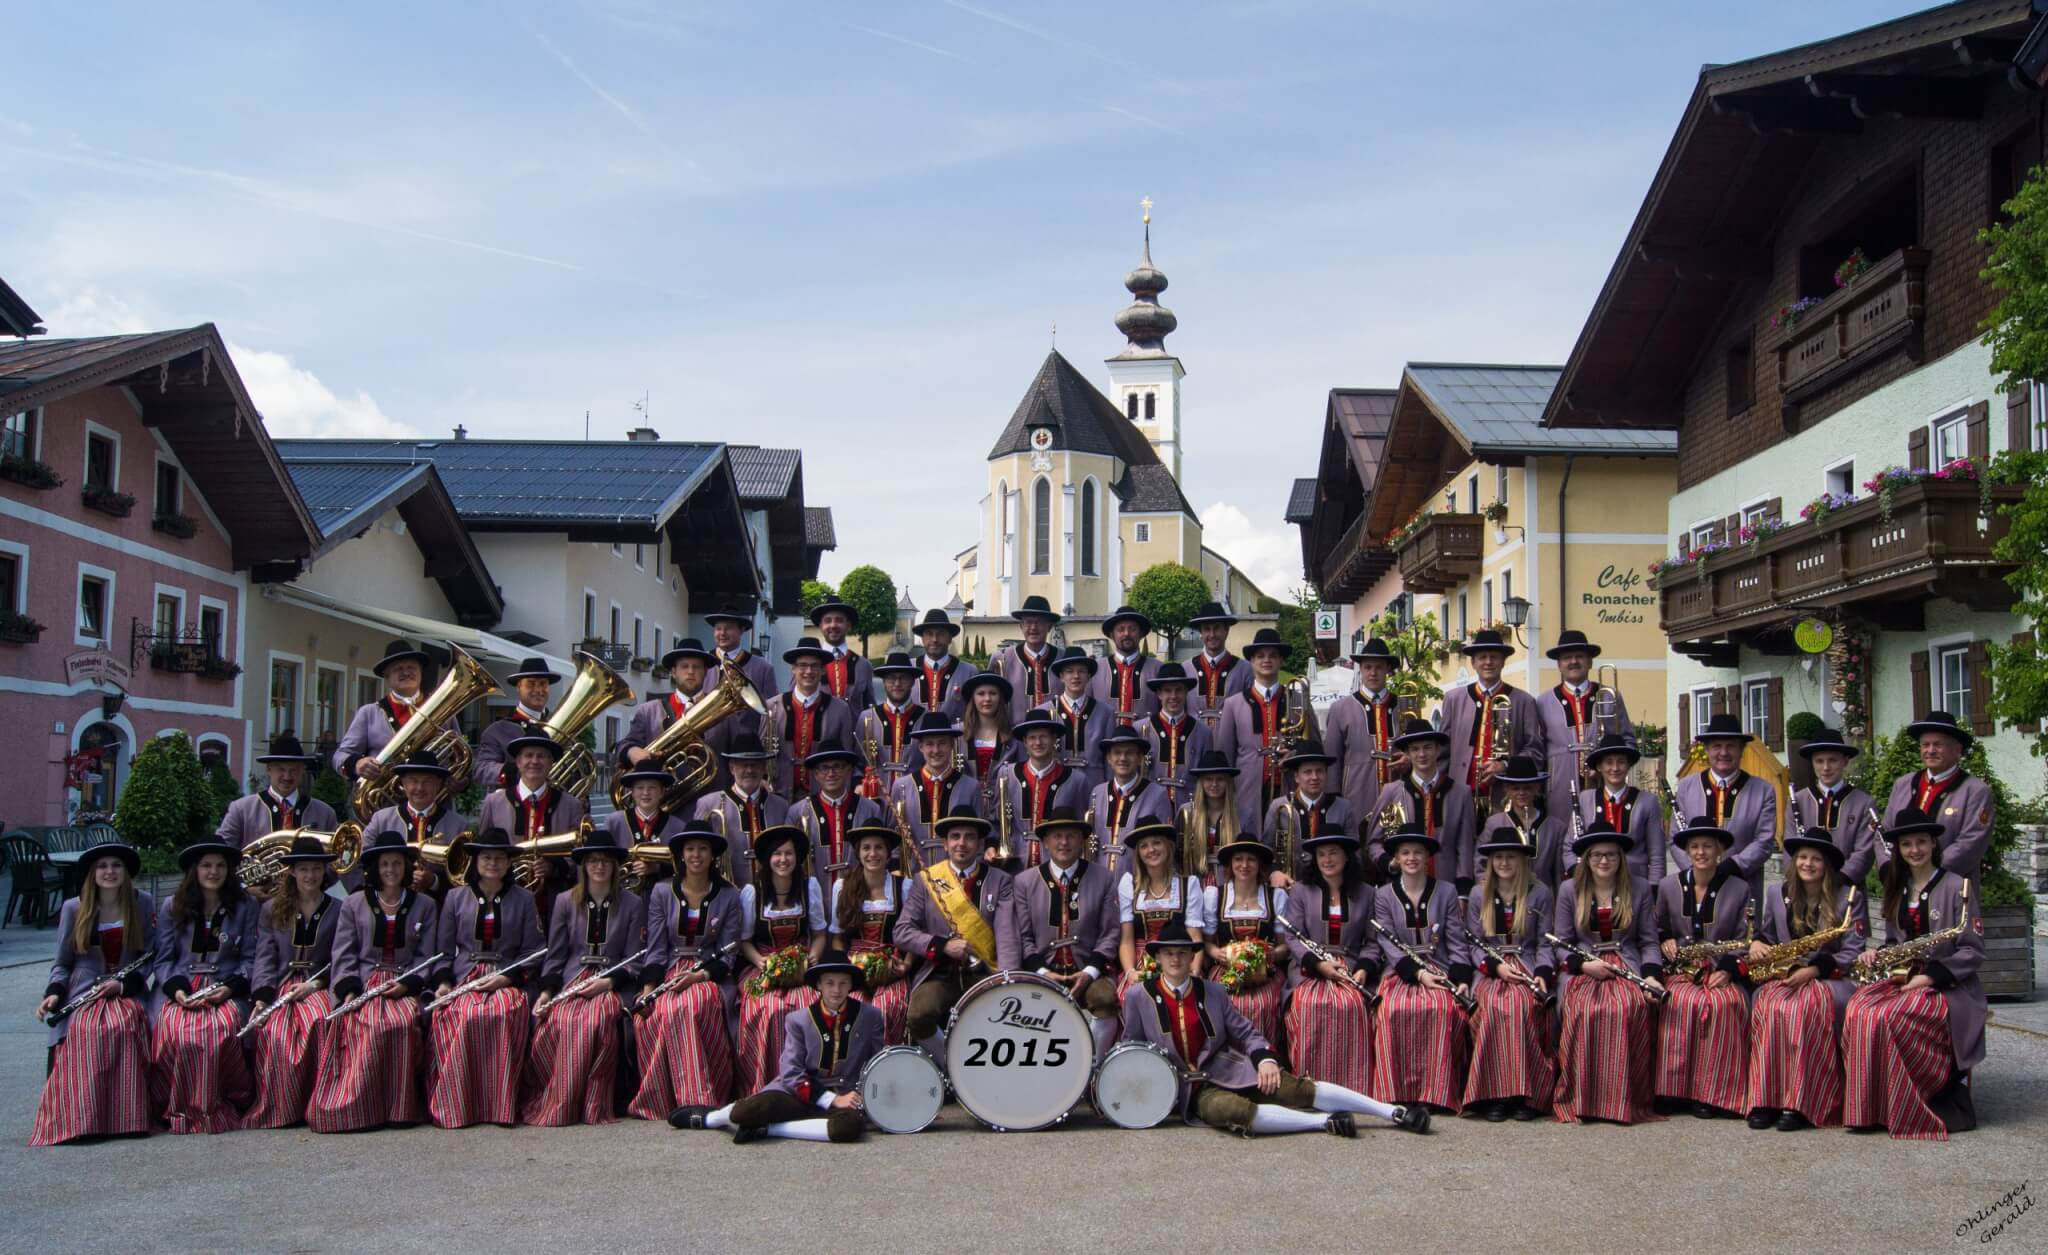 Square concert of the traditional music band St. Veit